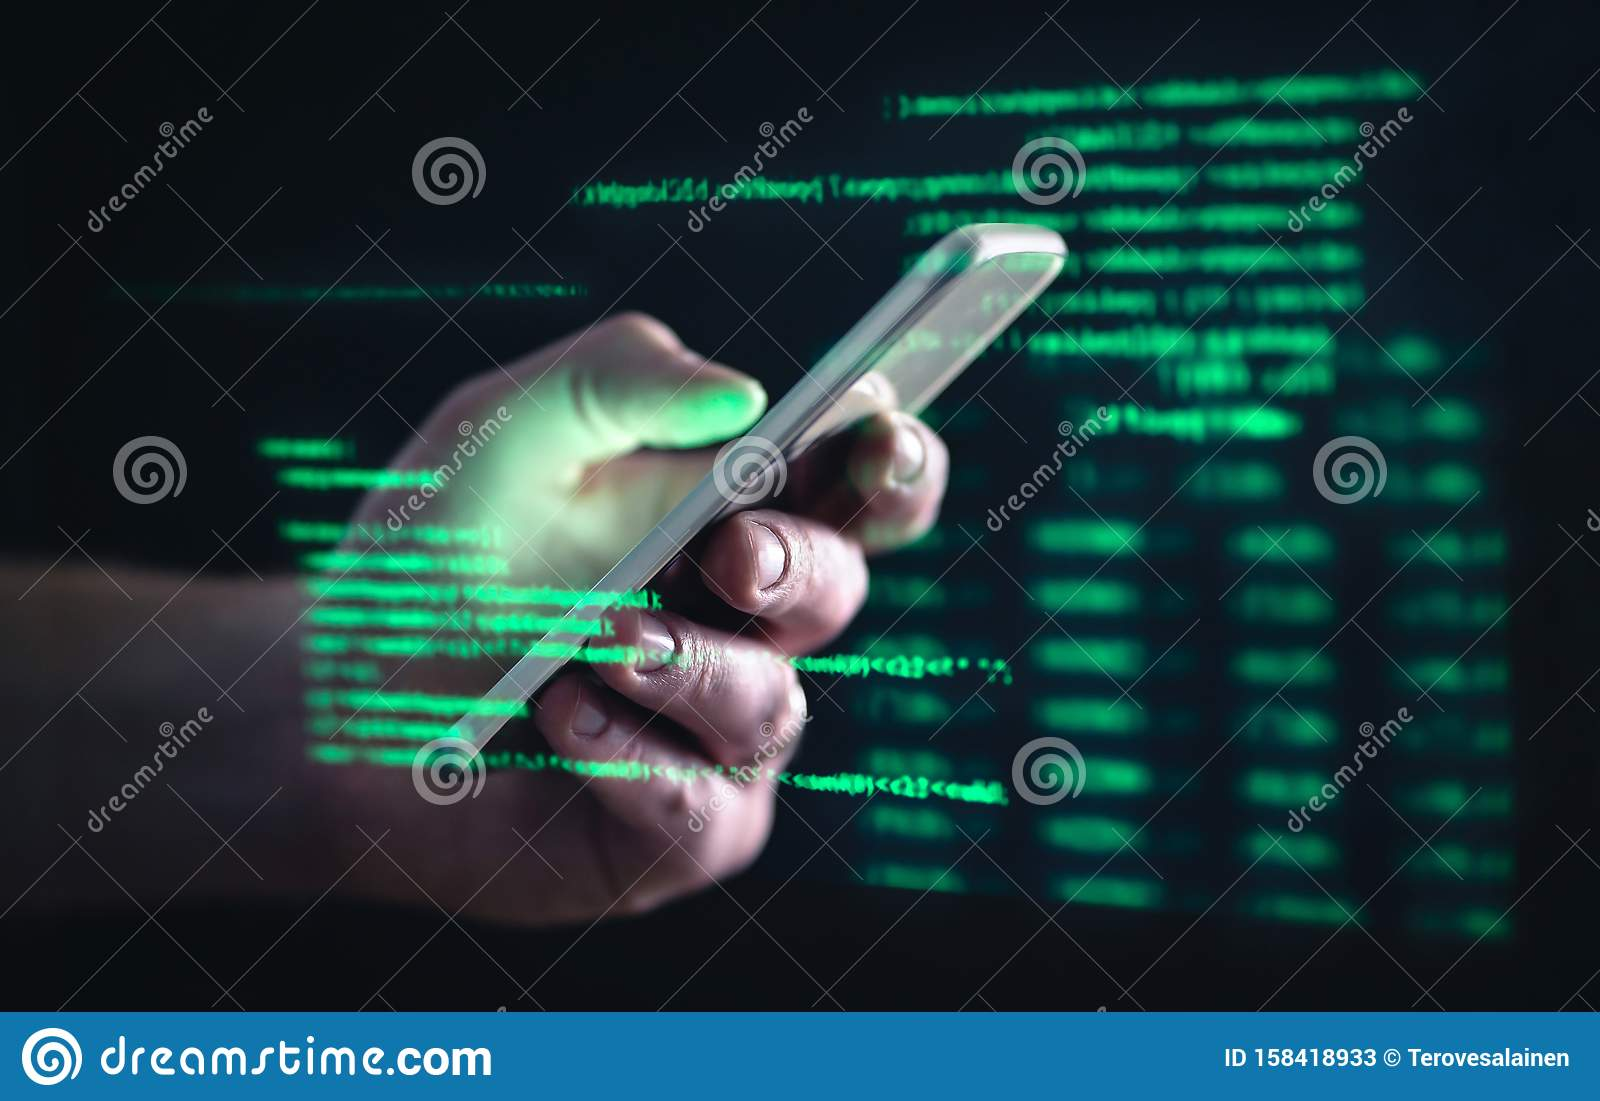 Darkweb, darknet and hacking concept. Hacker with cellphone. Man using dark web with smartphone. Mobile phone fraud, online scam.